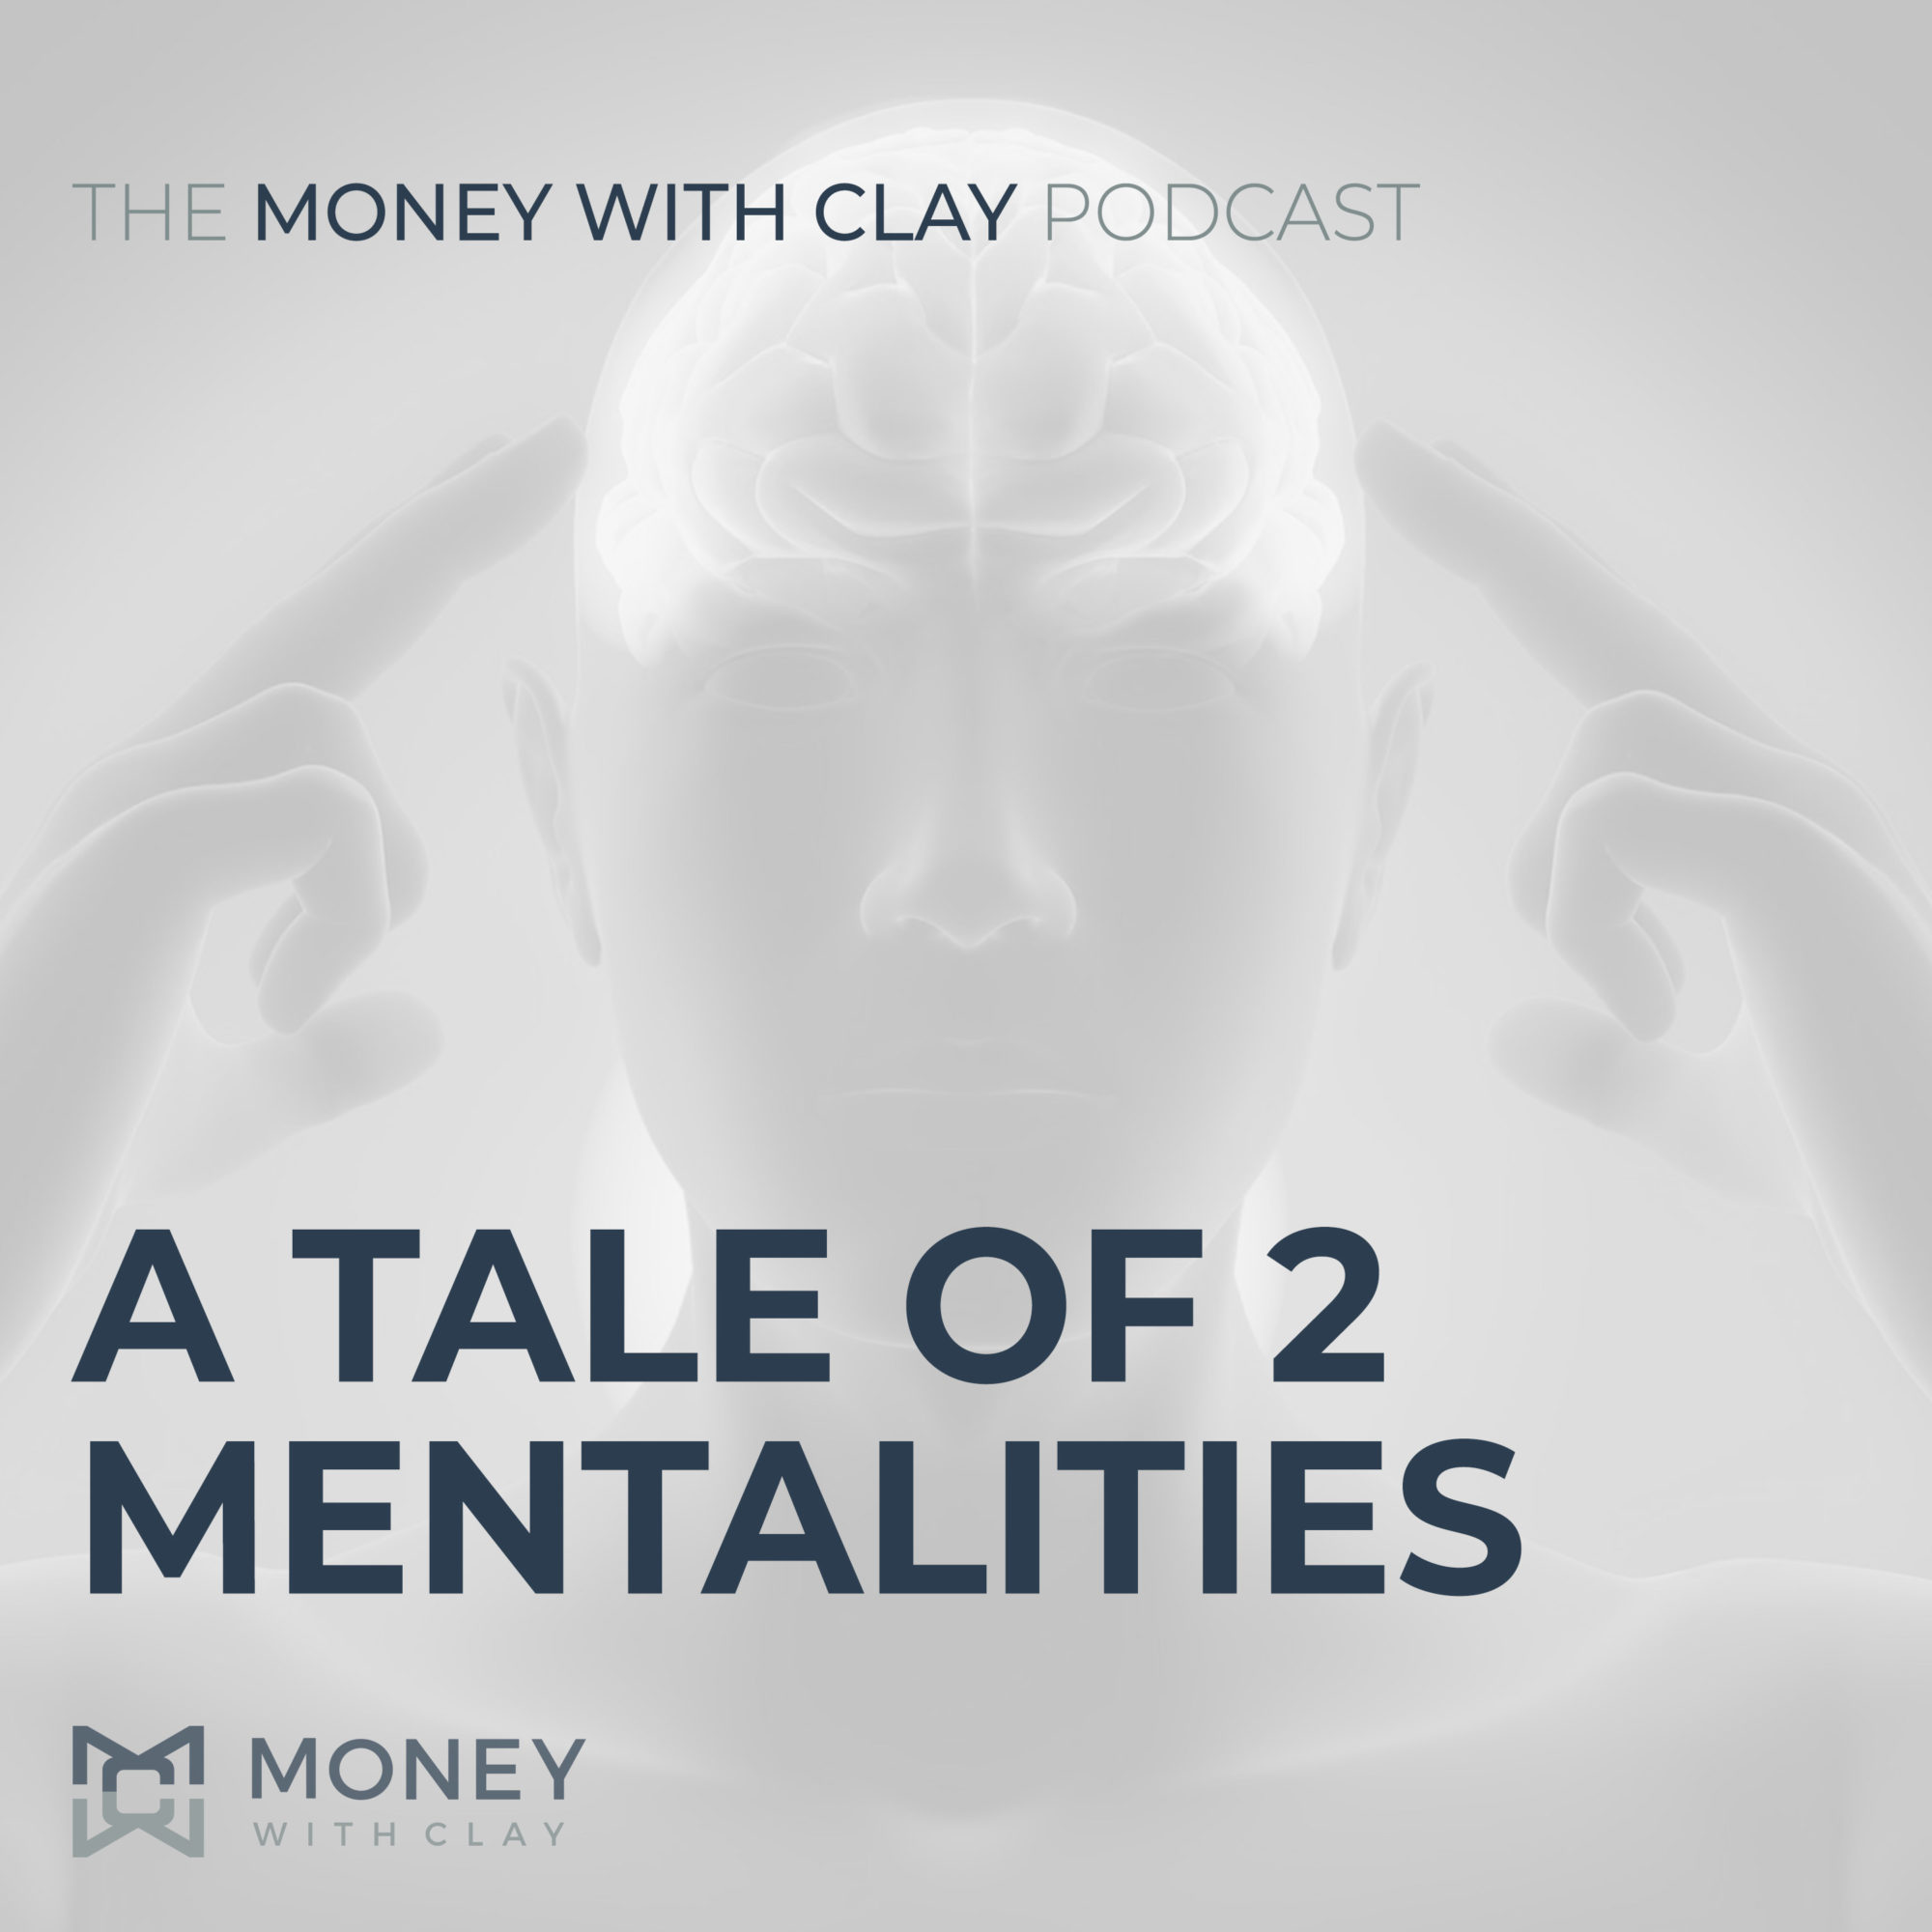 #031 - A Tale of 2 Mentalities